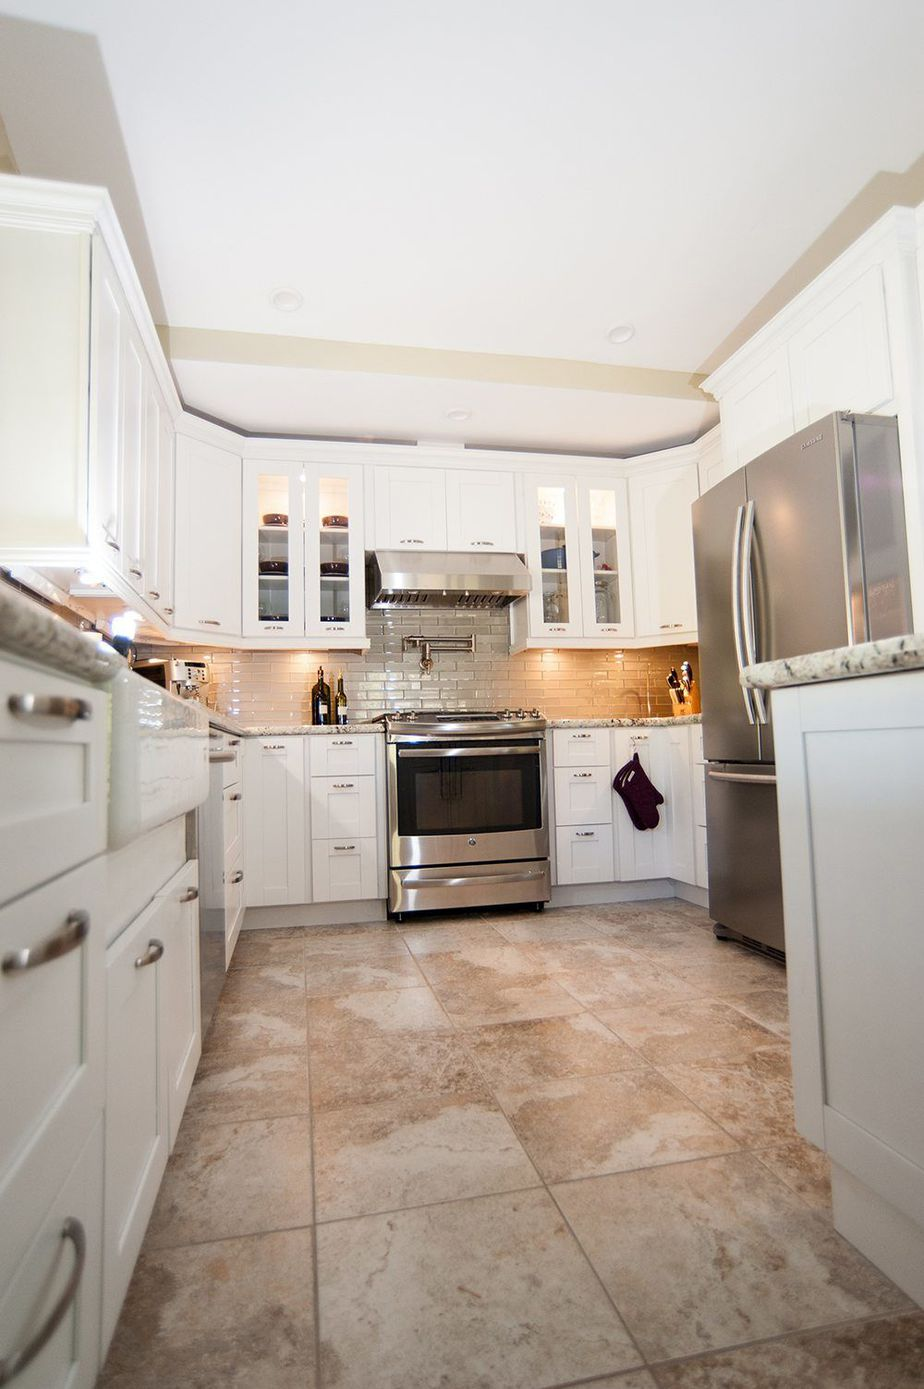 Kitchen Remodel With White Cabinets Featuring Glass Front Doors Near Stovetop